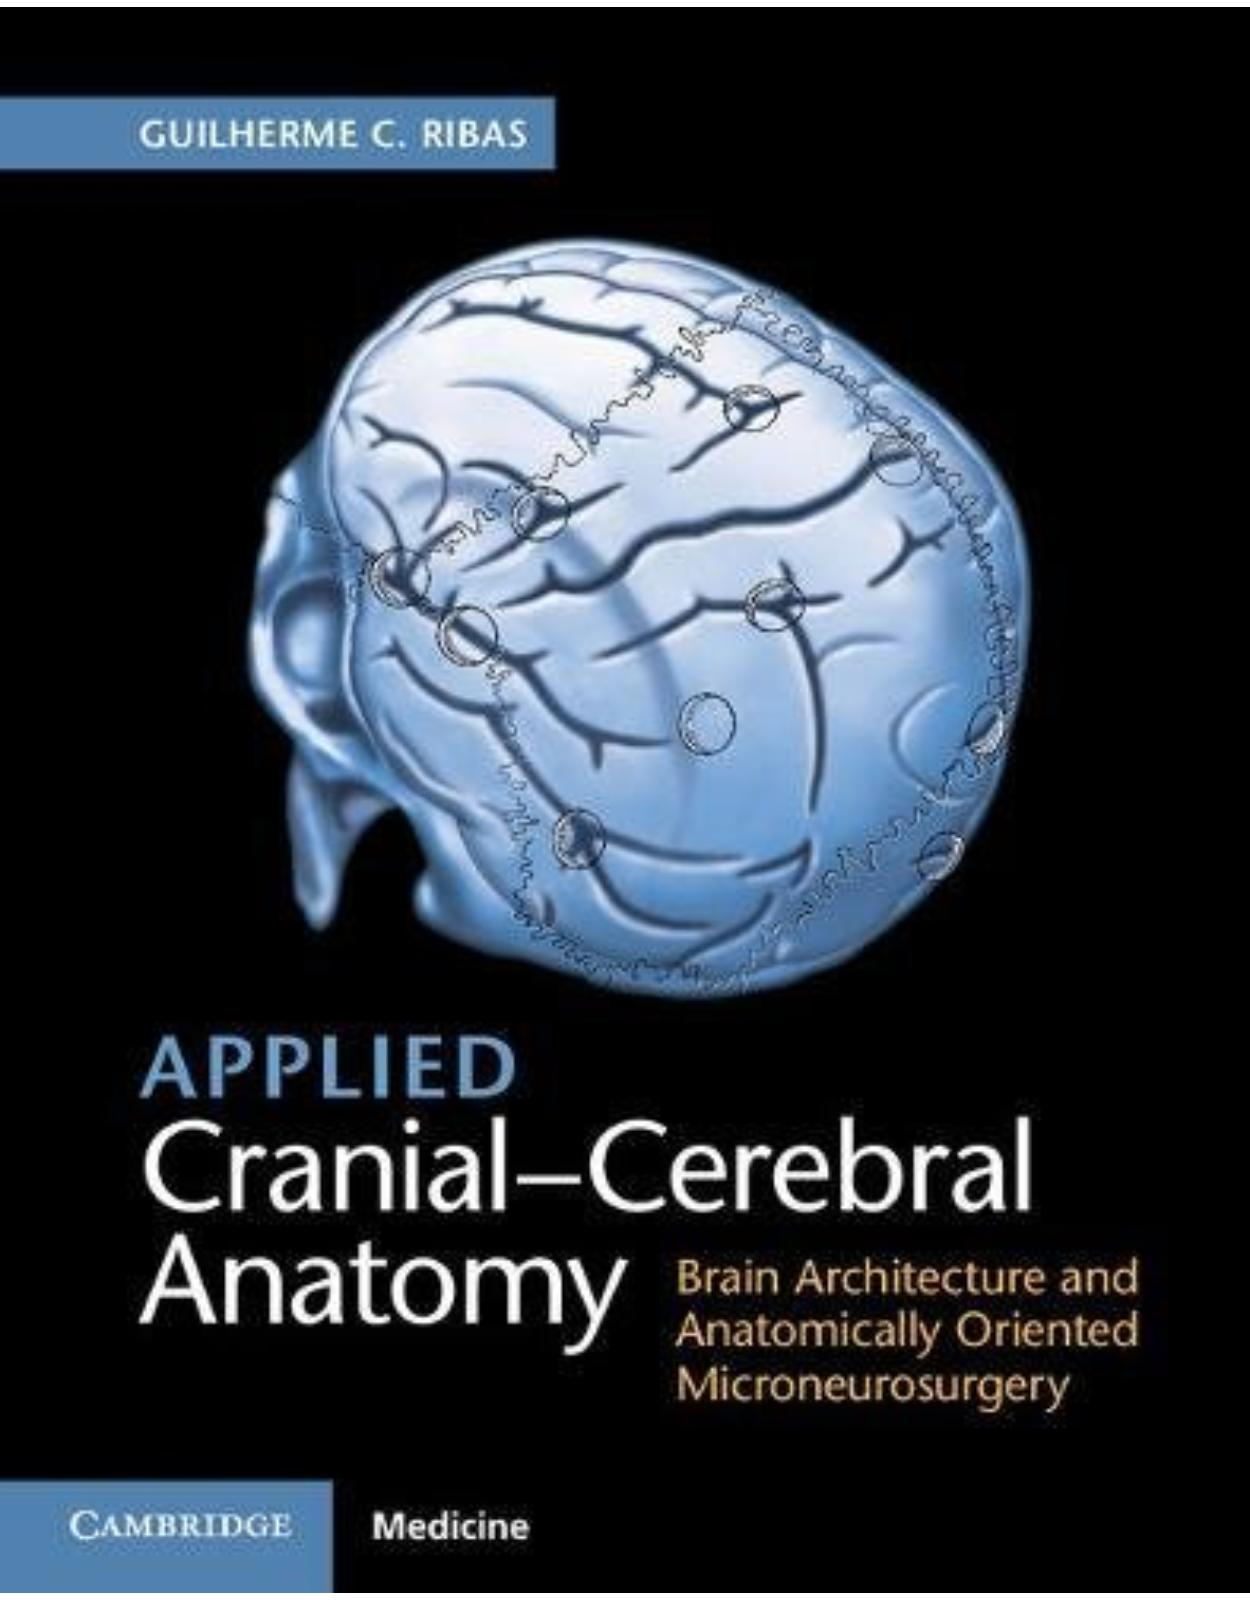 Applied Cranial-Cerebral Anatomy: Brain Architecture and Anatomically Oriented Microneurosurgery